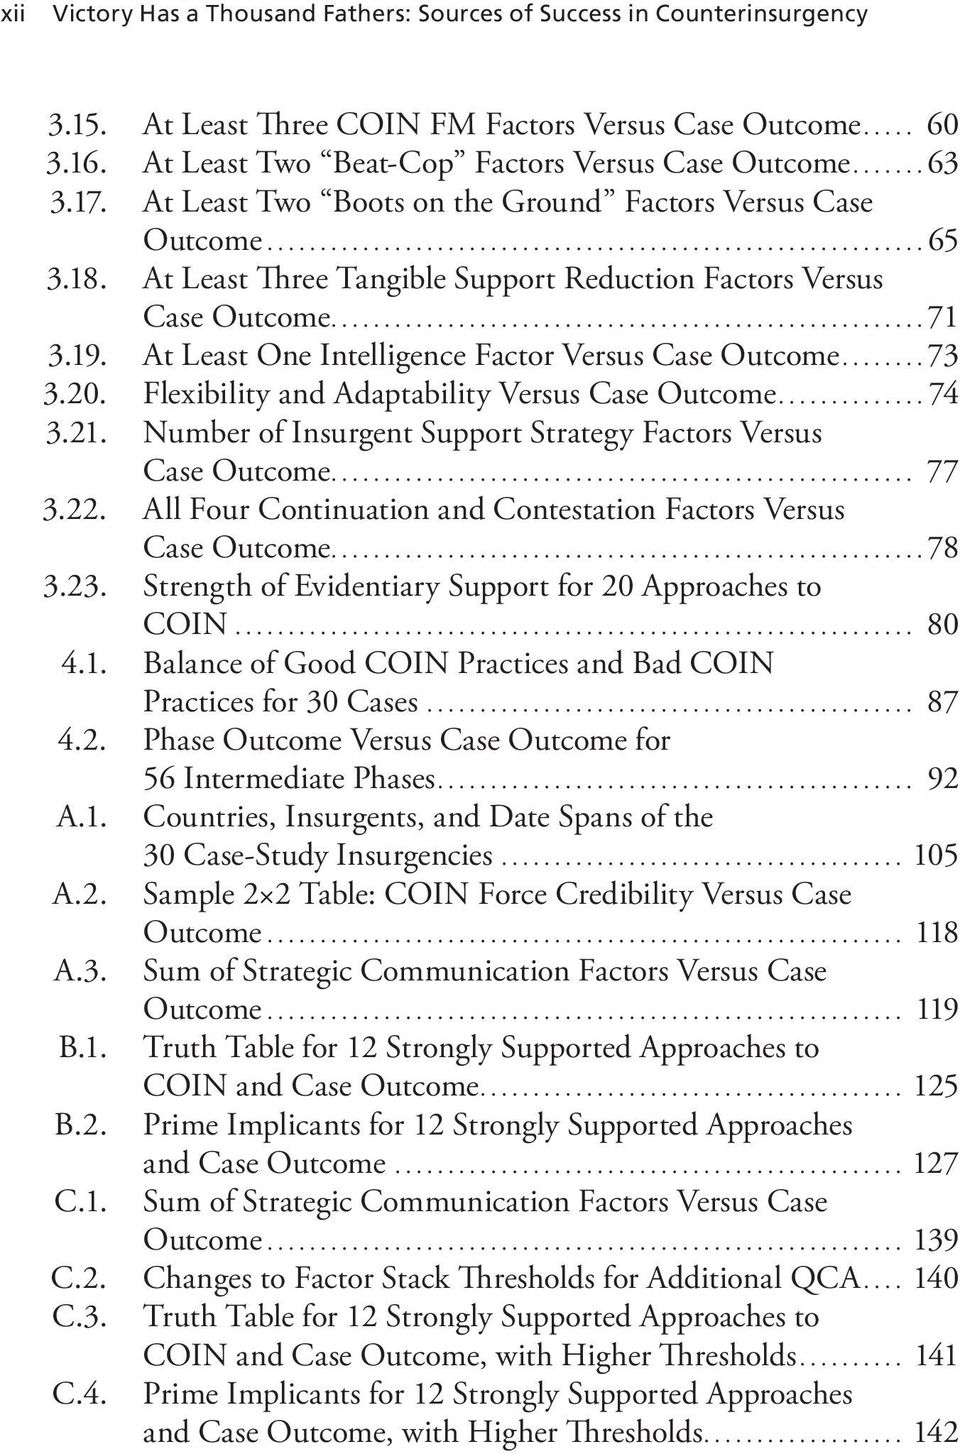 At Least One Intelligence Factor Versus Case Outcome...73 3.20. Flexibility and Adaptability Versus Case Outcome...74 3.21. Number of Insurgent Support Strategy Factors Versus Case Outcome... 77 3.22.